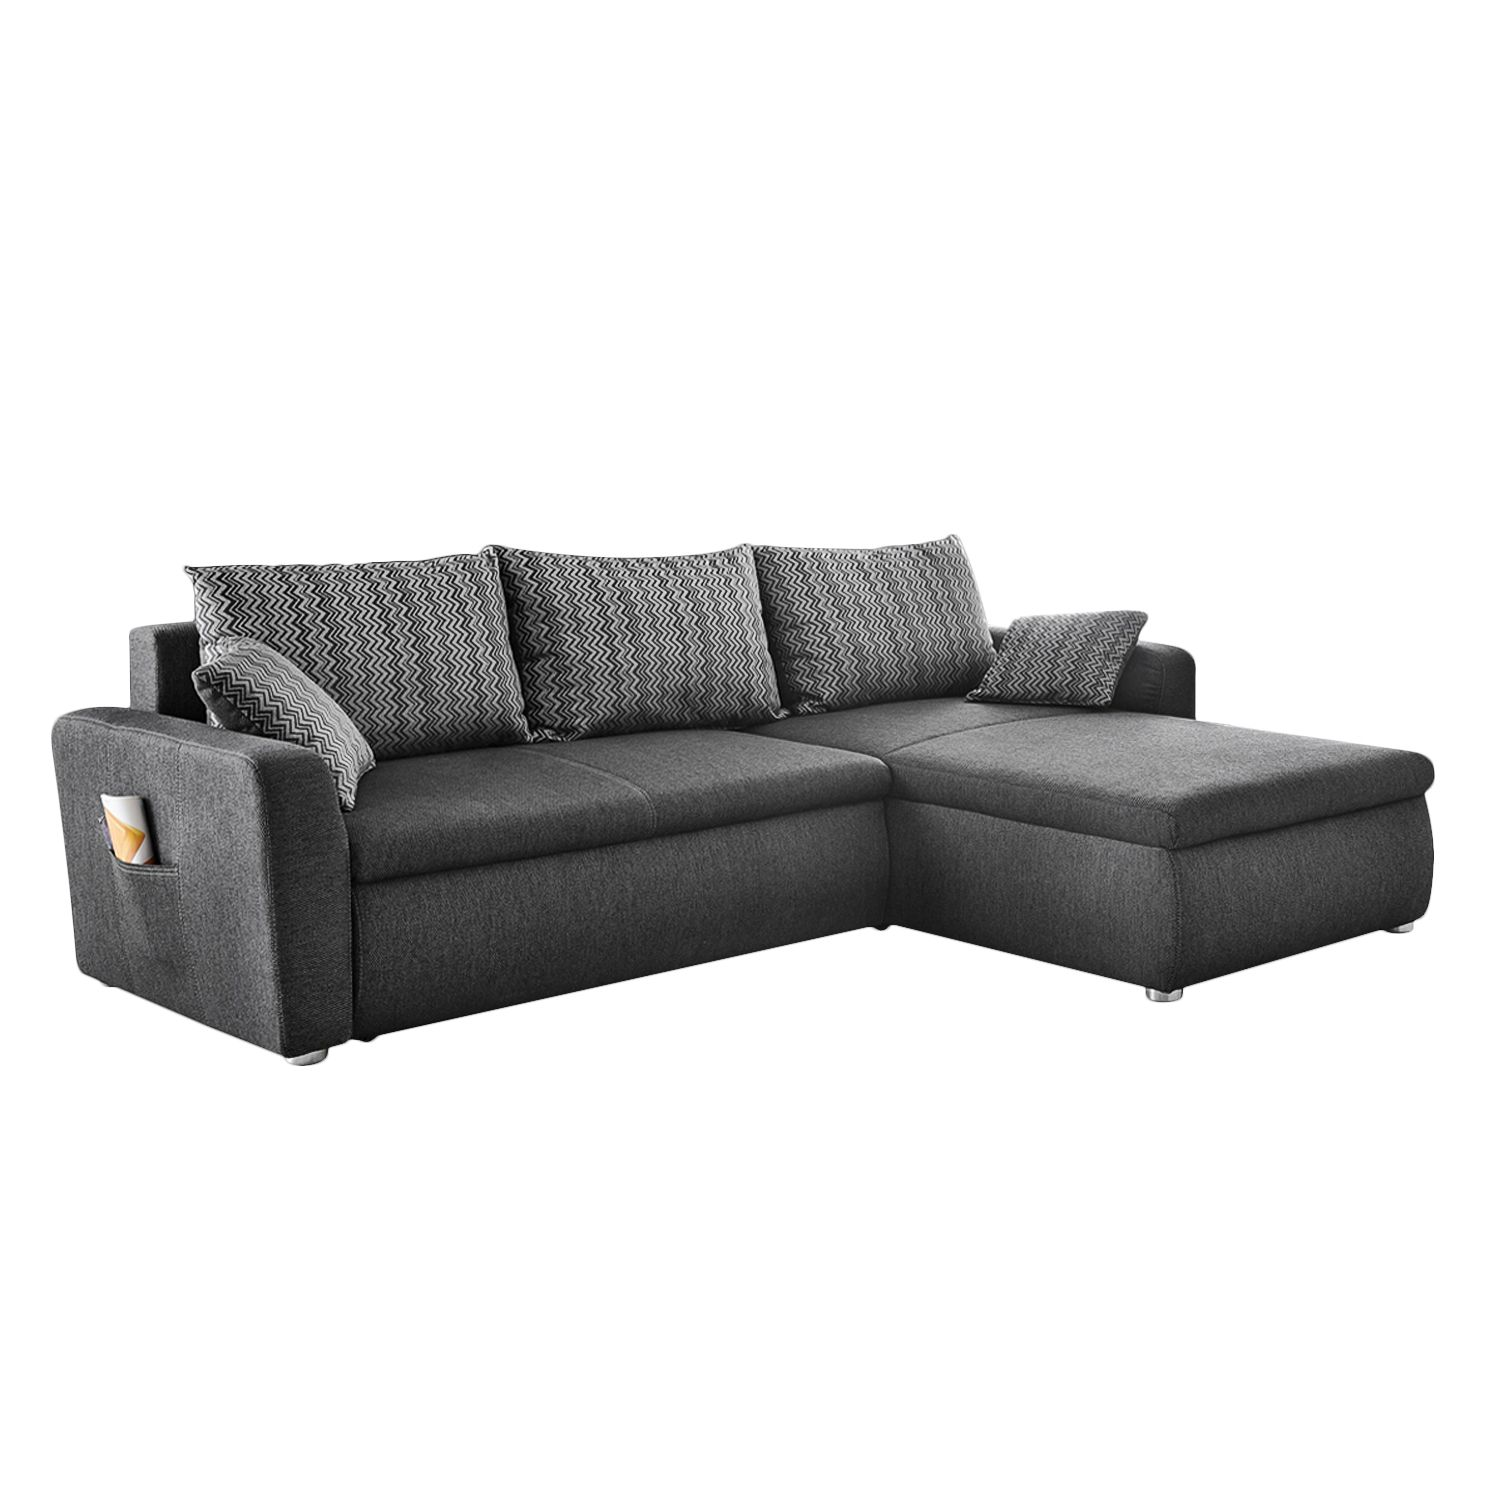 ecksofa mit schlaffunktion online kaufen. Black Bedroom Furniture Sets. Home Design Ideas